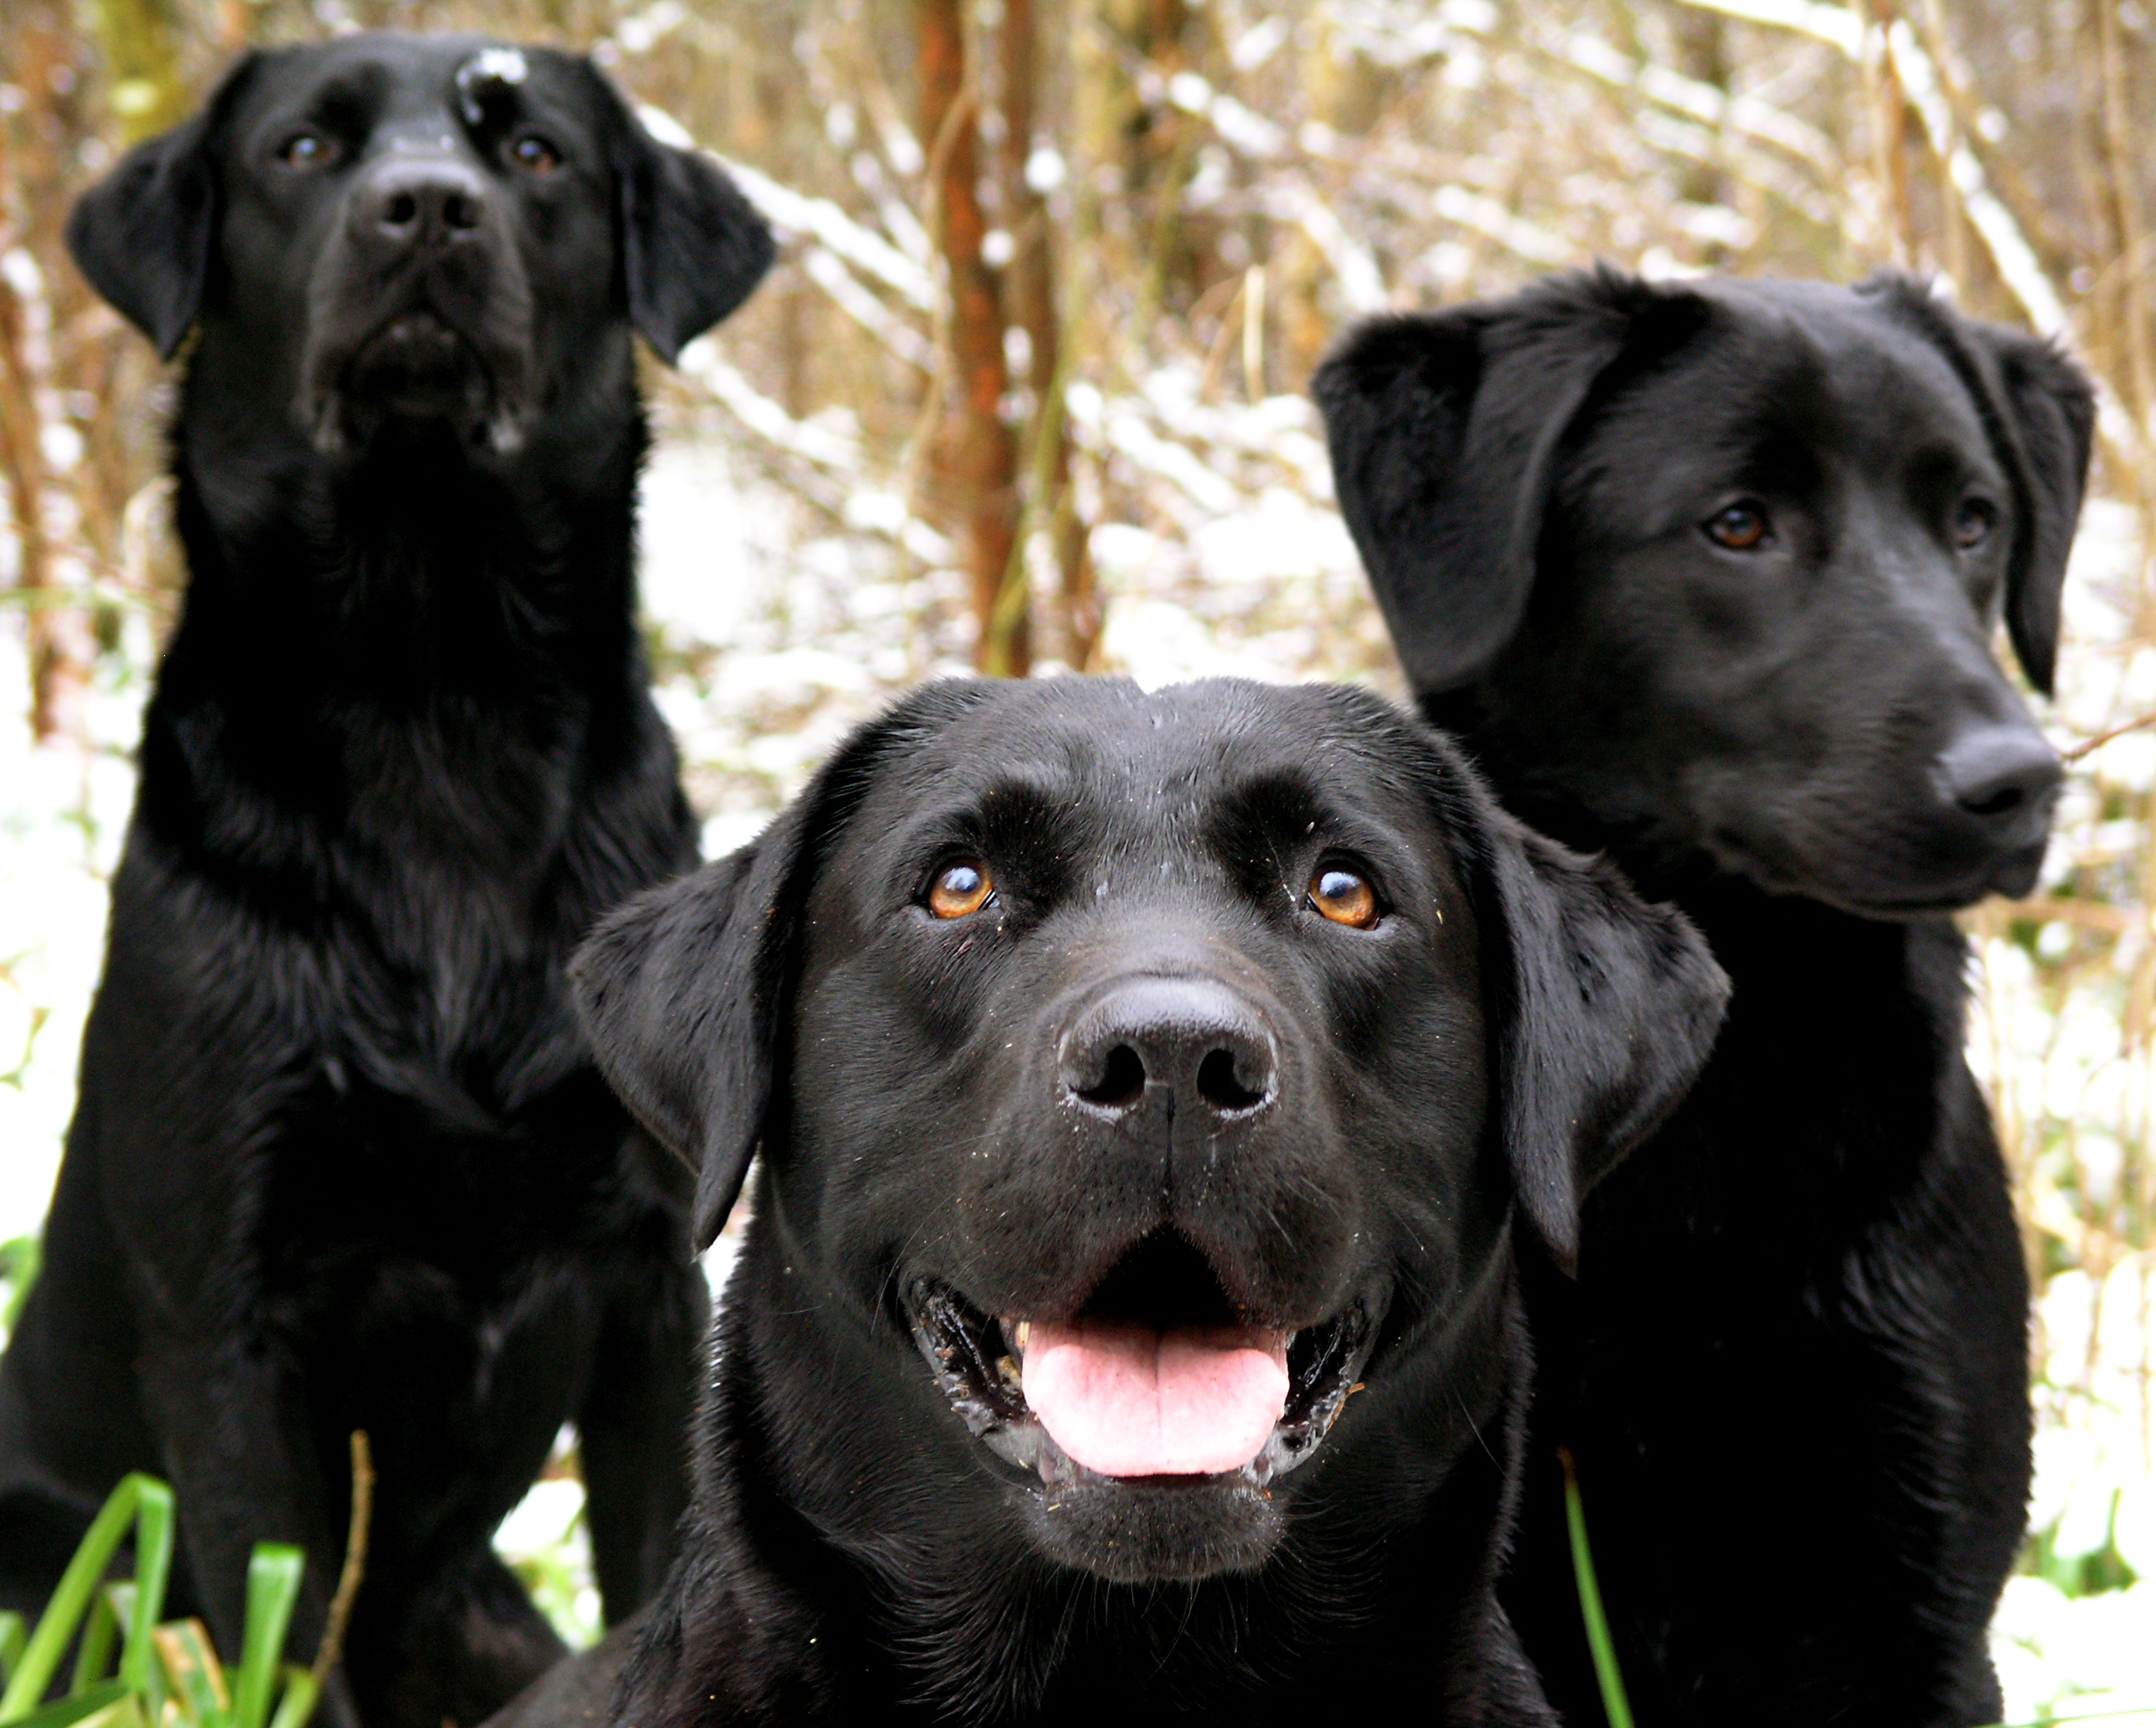 labrador retrievers 2018-8-1 the labrador retriever (or lab and labrador for short) is a breed of dogit is a kind of gun doglabrador retrievers are very gentle dogs with family-friendly personalities.